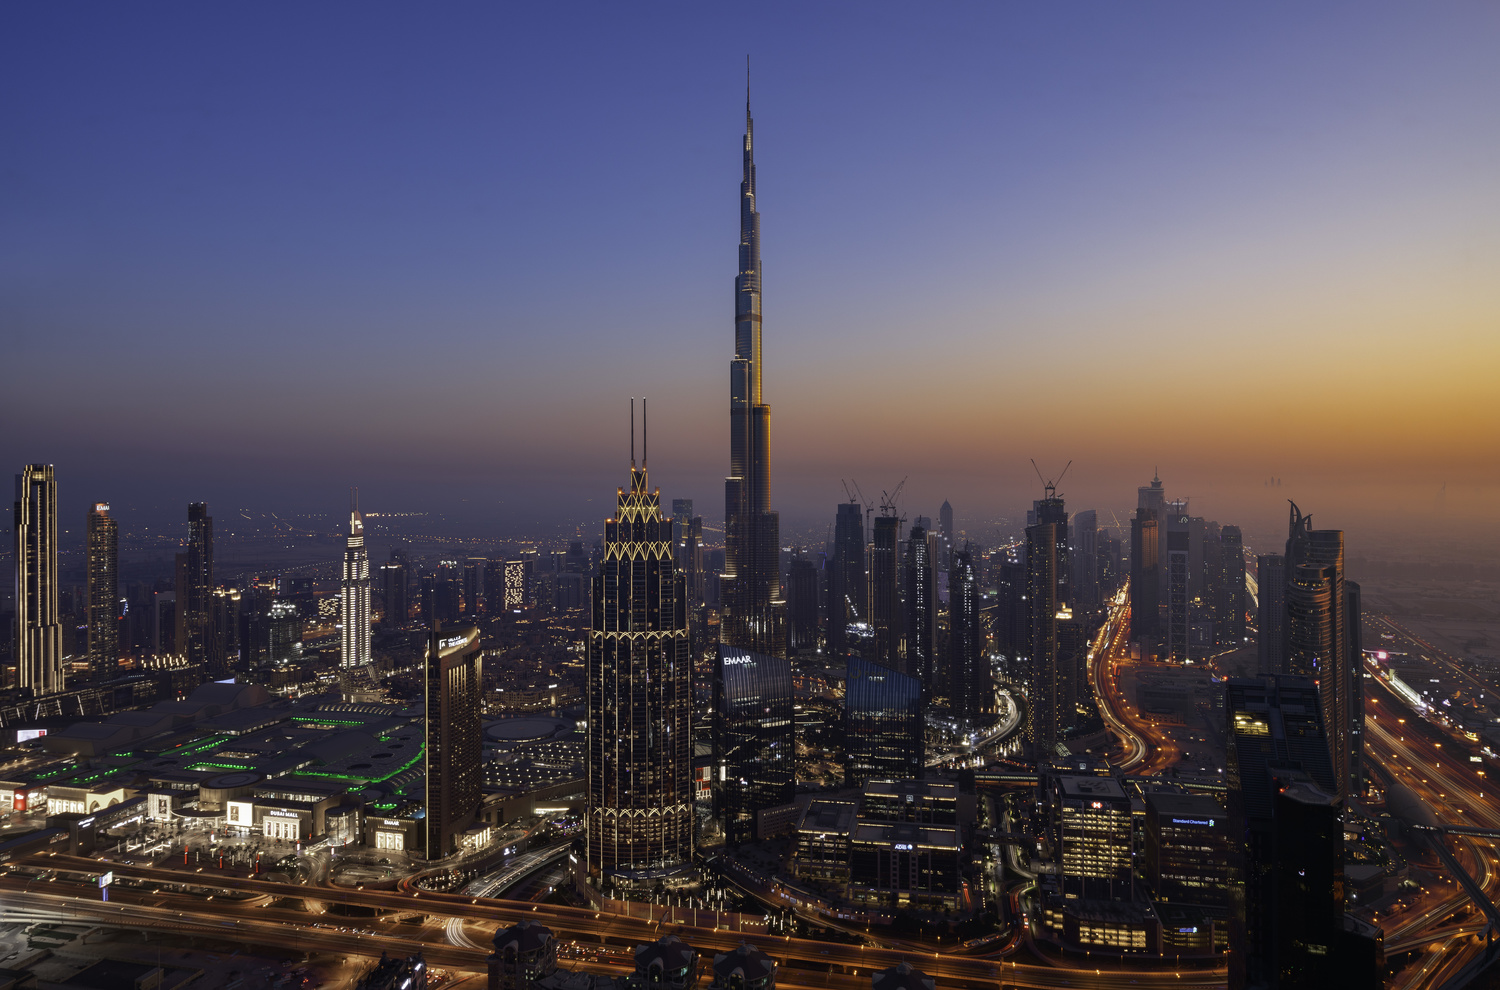 Twilight of Downtown Dubai from 75 floors up. by Ben Preece